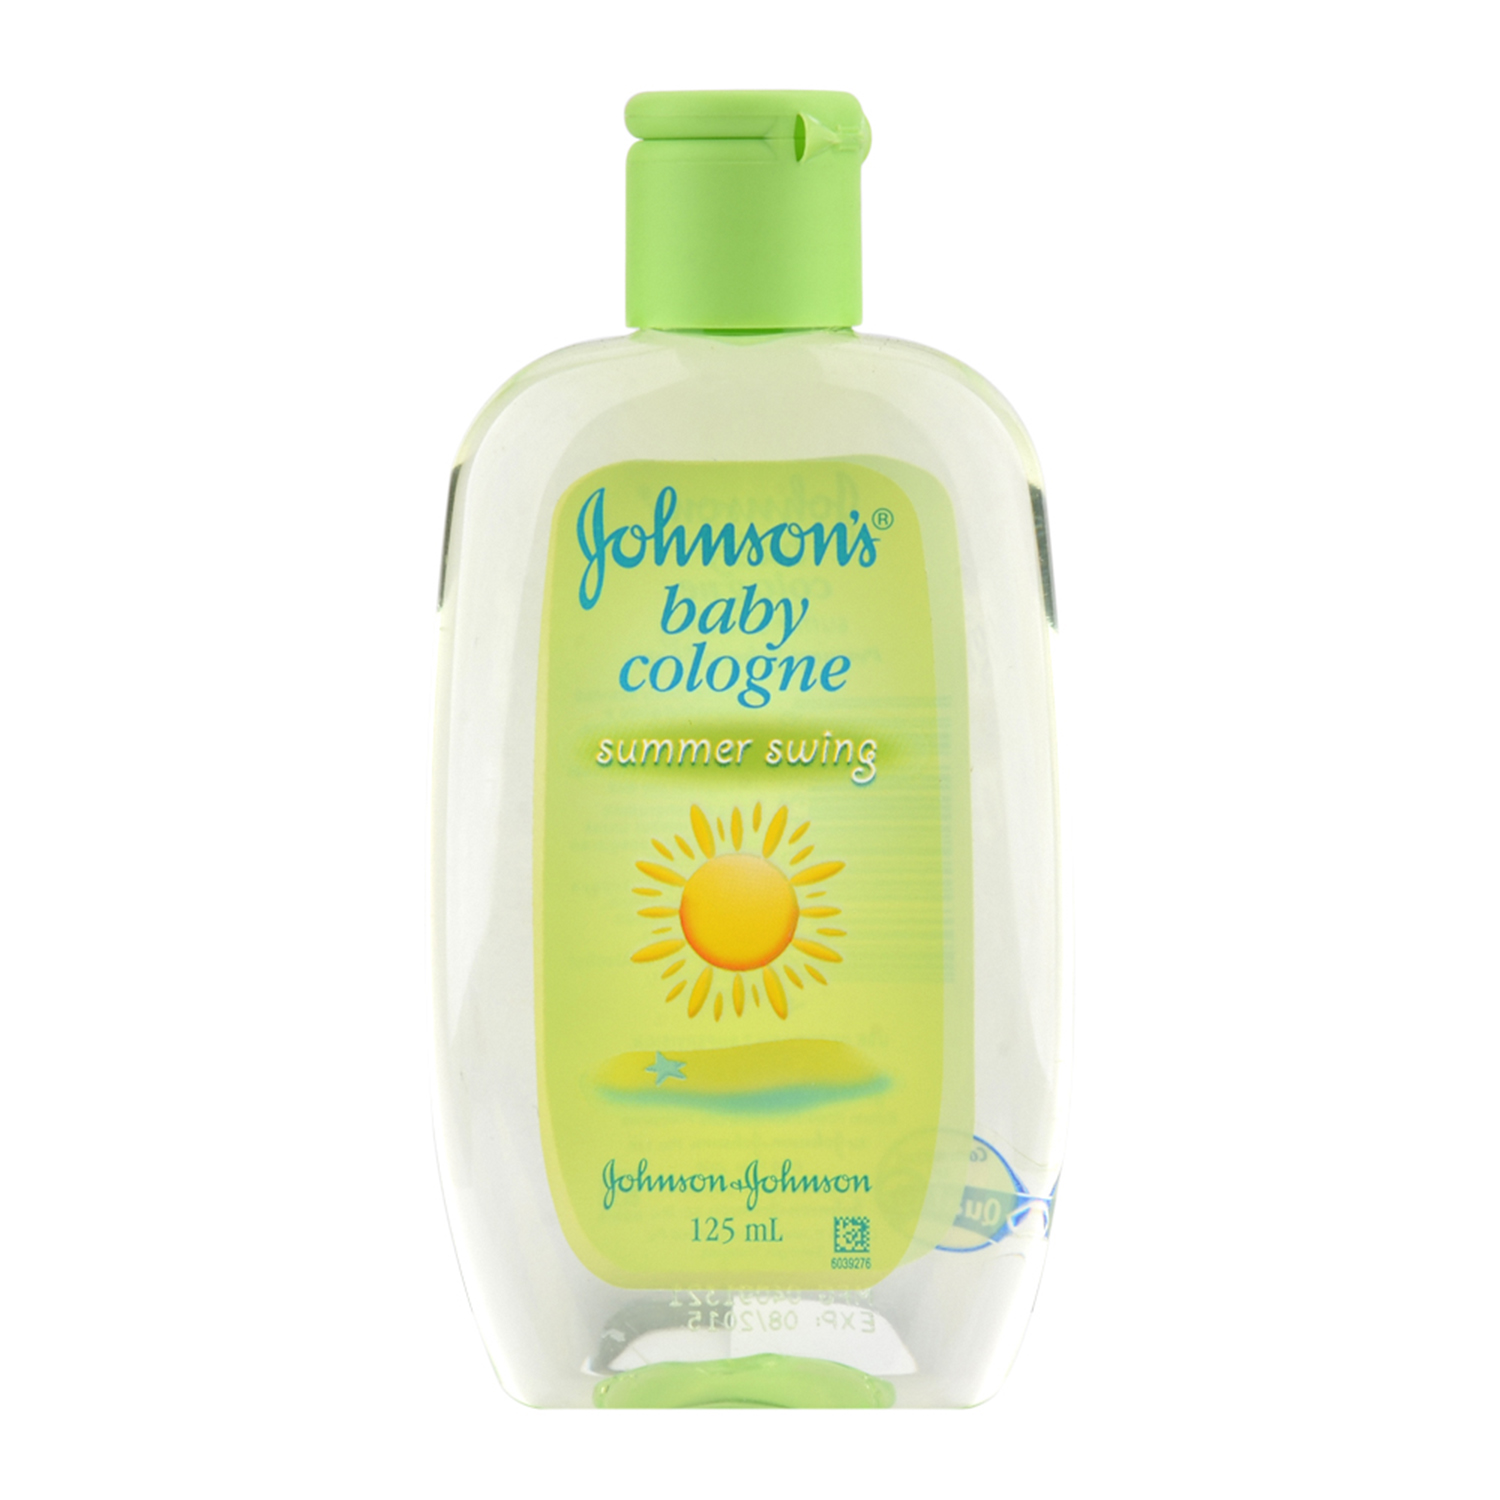 J &J Baby Cologne - Summer Swing 125ml